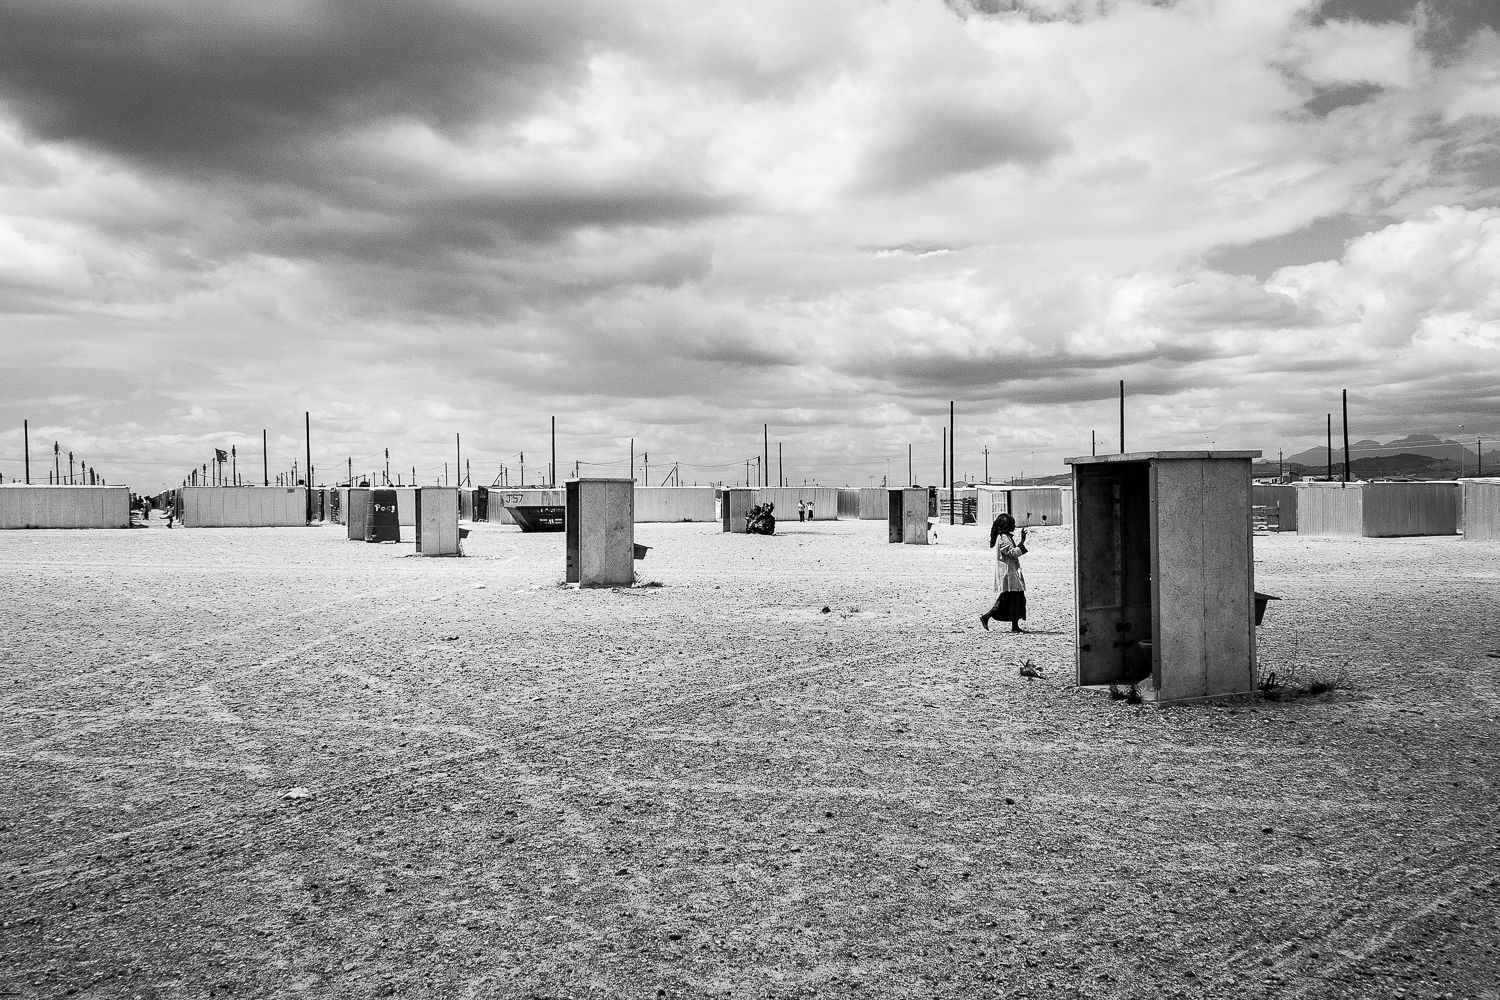 Free standing toilets built before the completion housing structures. One toilet for four households, Blikkiesdorp, 2010.